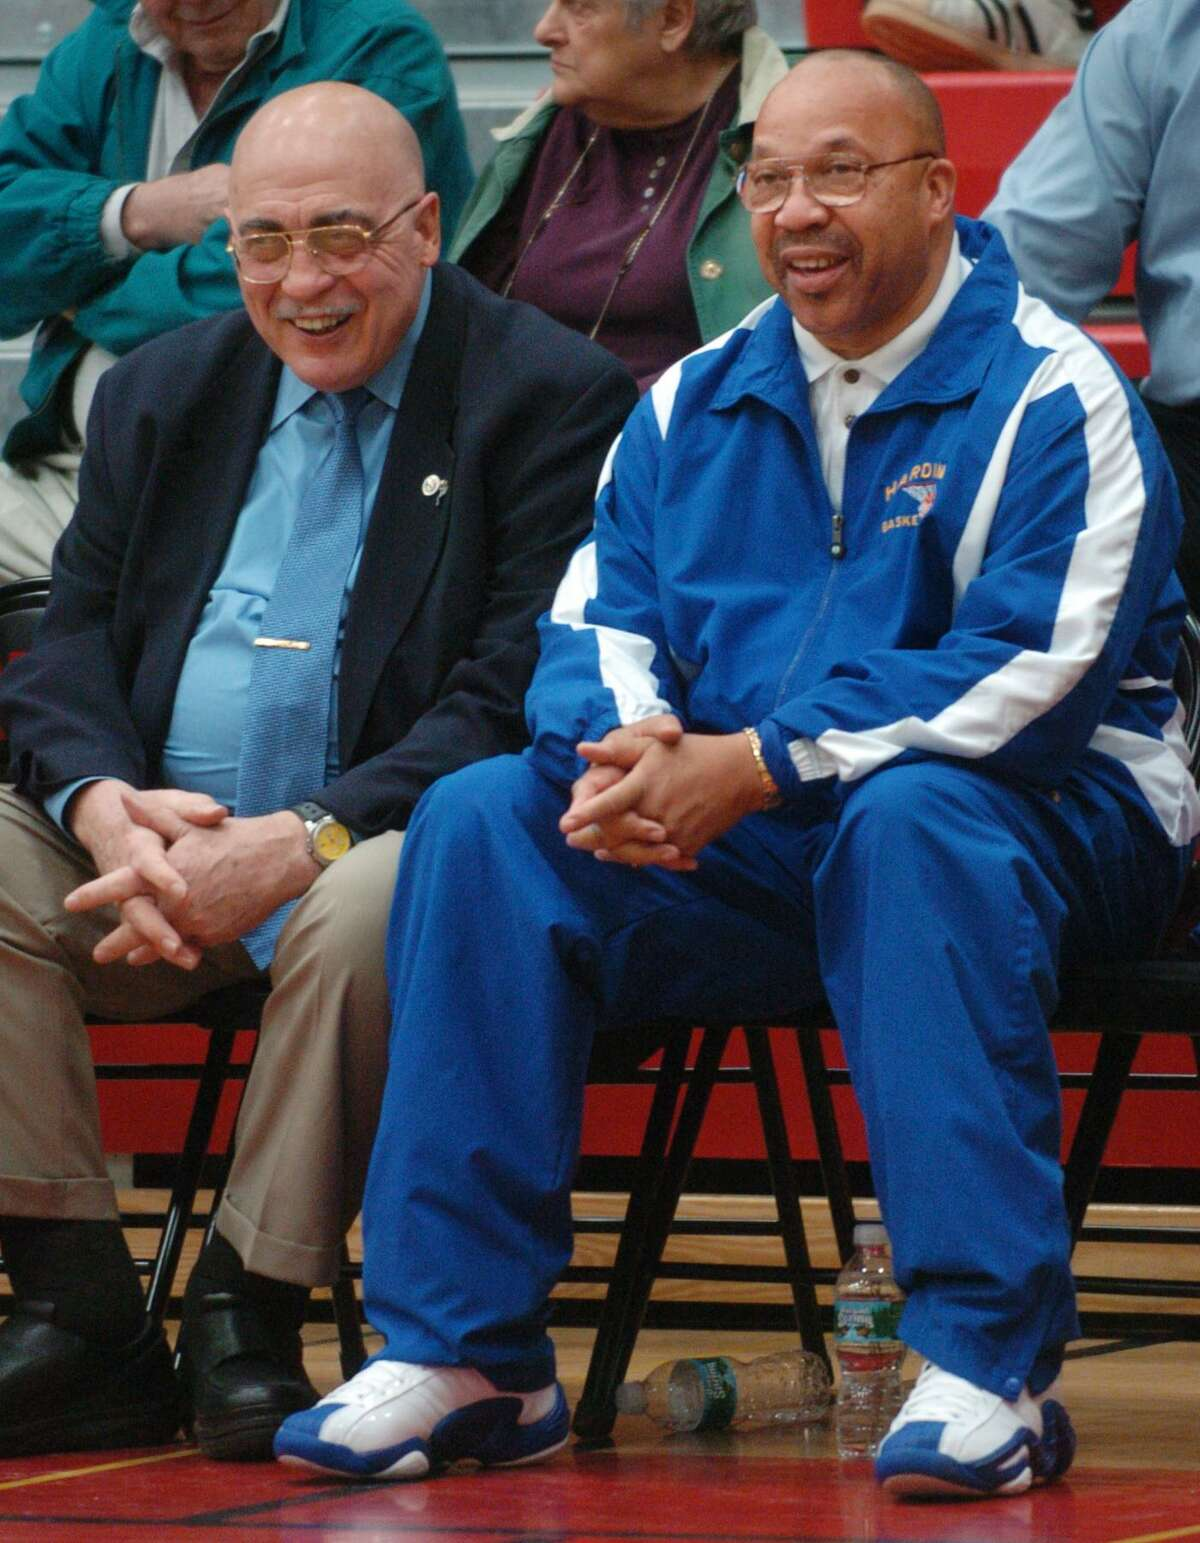 In this Feb. 26, 2008, file photo, longtime coaching rivals and friends Vito Montelli of St. Joseph High School, left, and Charlie Bentley of Harding High School share some bench time together just before their teams kicked off the FCIAC basketball semifinal at Fairfield Warde High School.